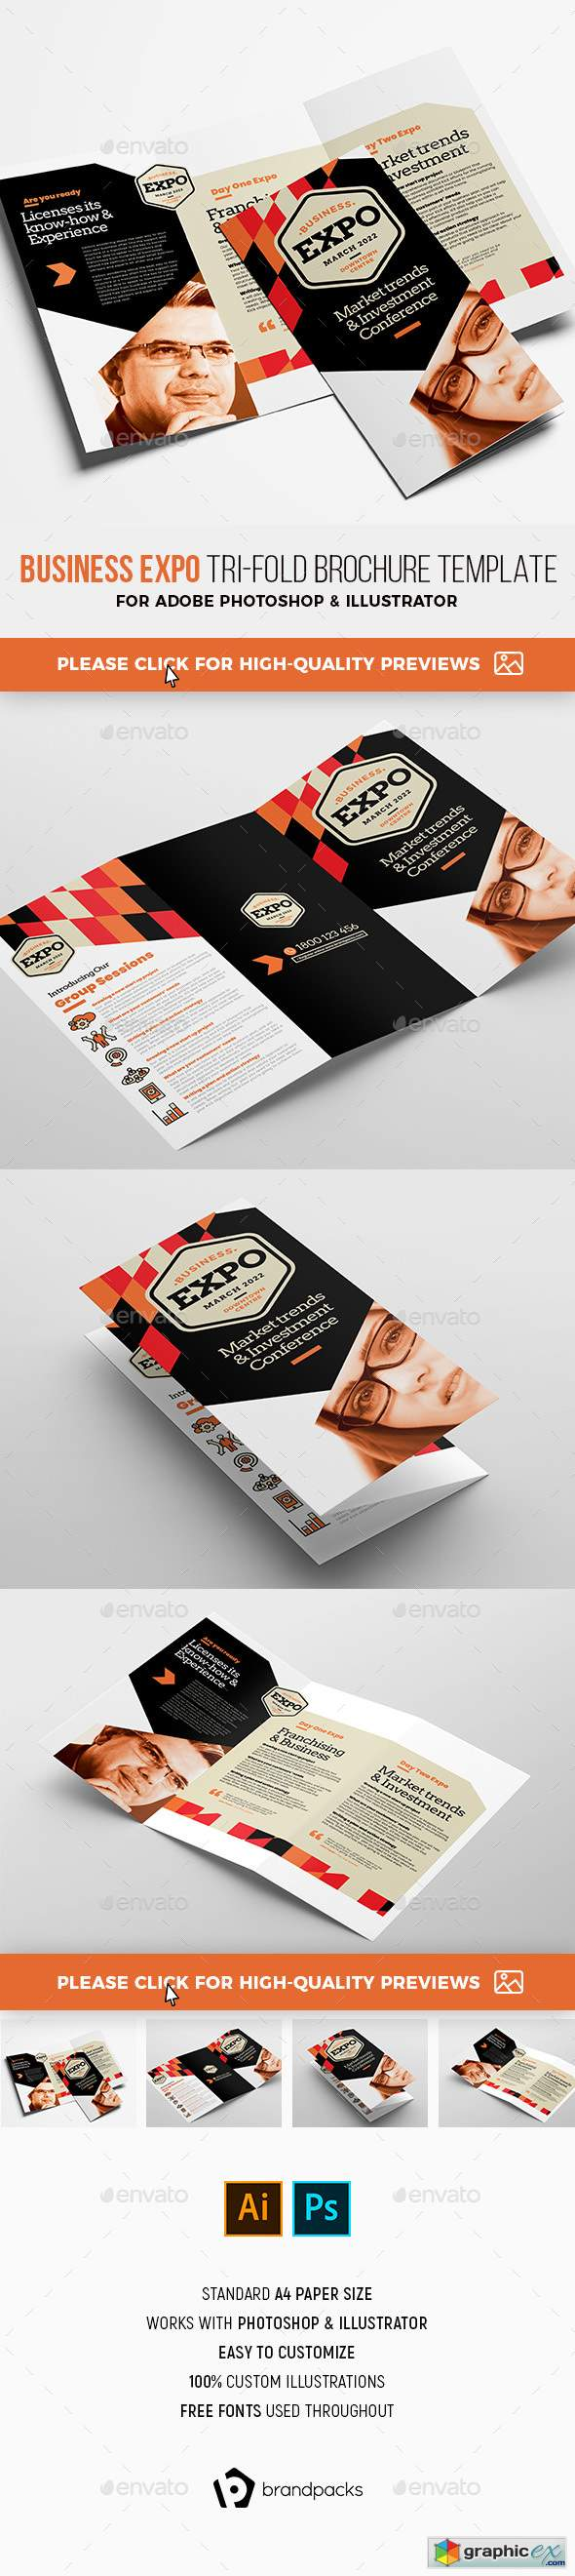 Business Expo Tri-Fold Brochure